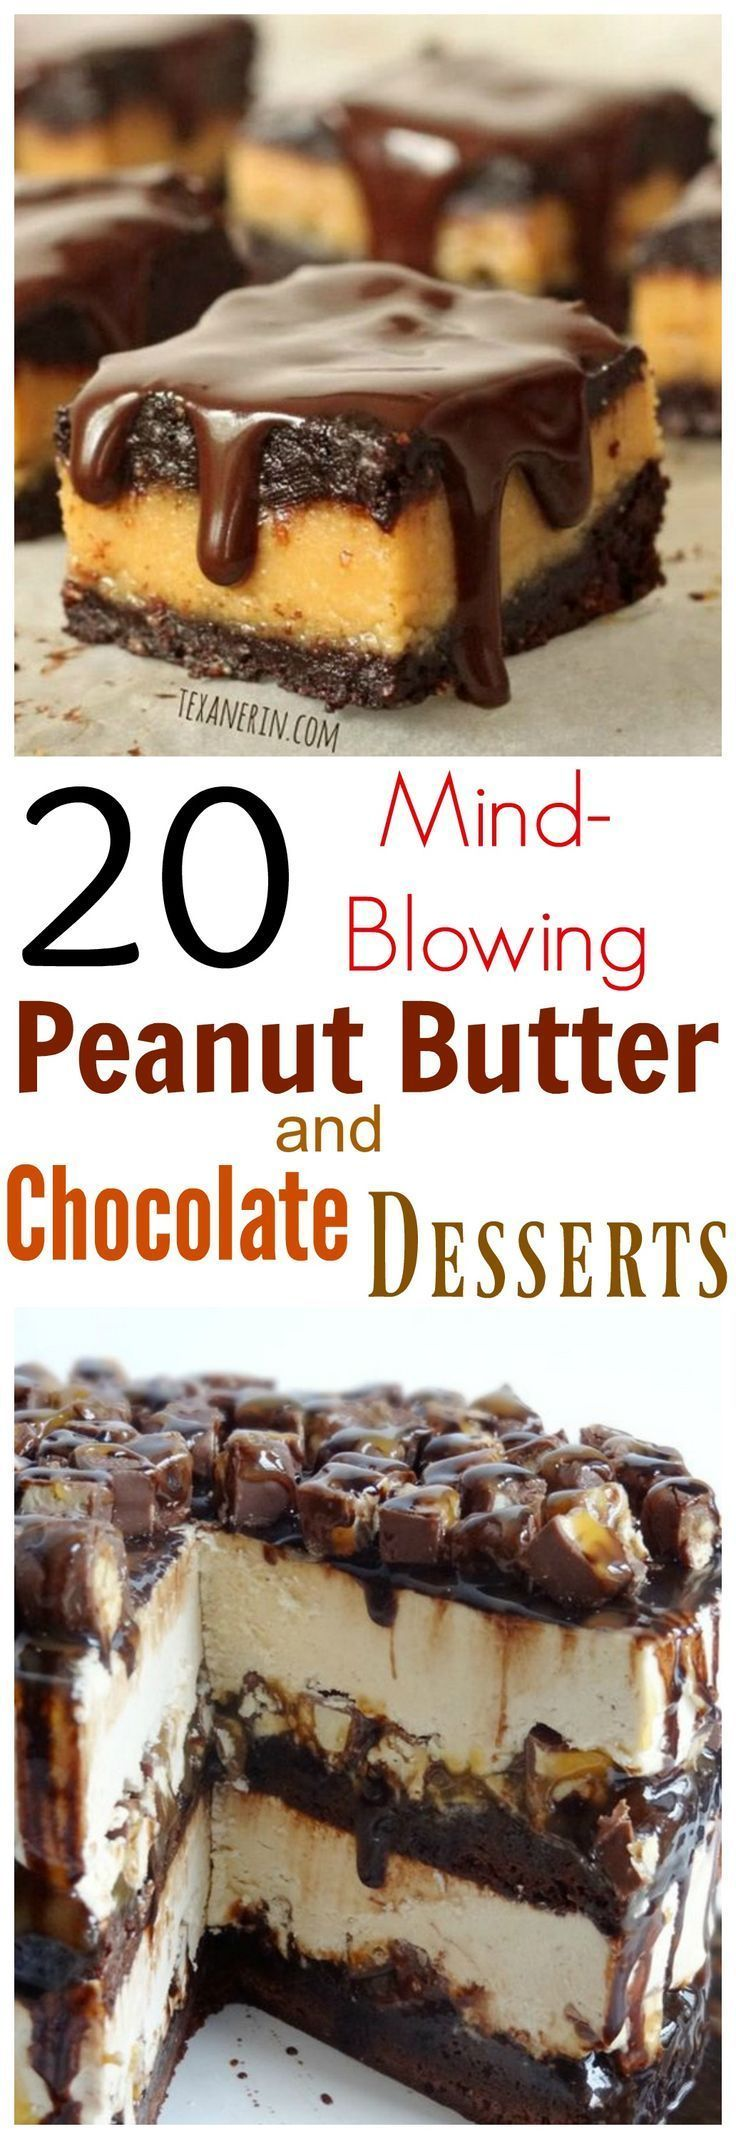 20 Mind-Blowing Chocolate and Peanut Butter Desserts